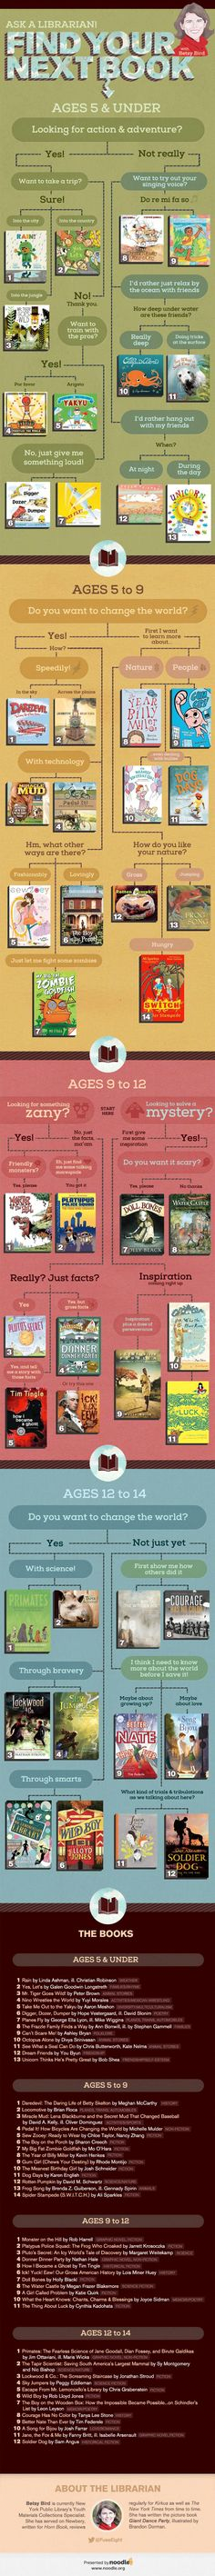 Have Your Child Use This Graphic to Find Their Next Book to Read! | RussianParentsWorld.com